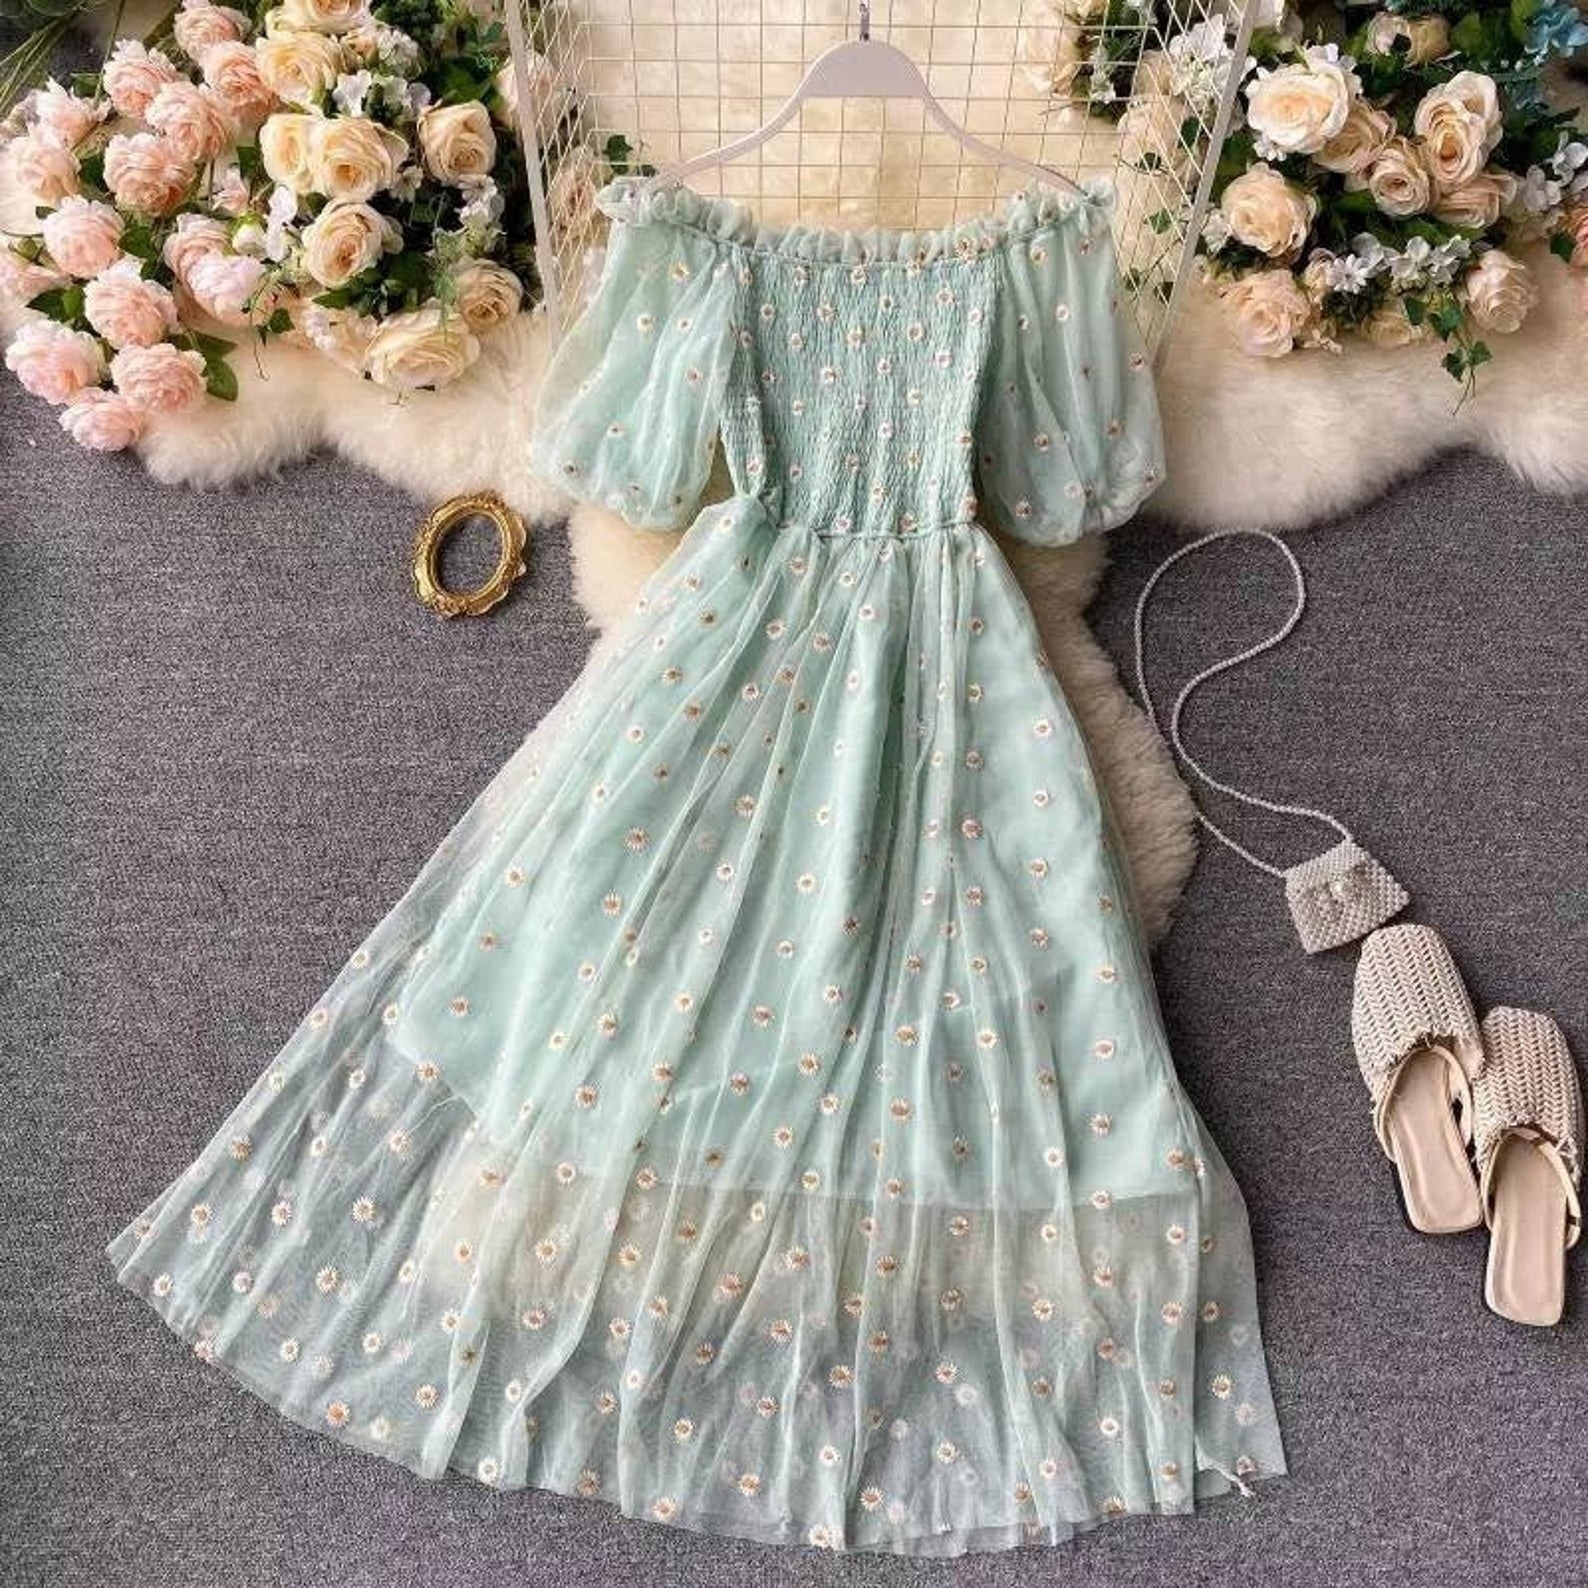 off the shoulder light green dress with puffy sleeves and a sheer overlay with embroidered flowers on it